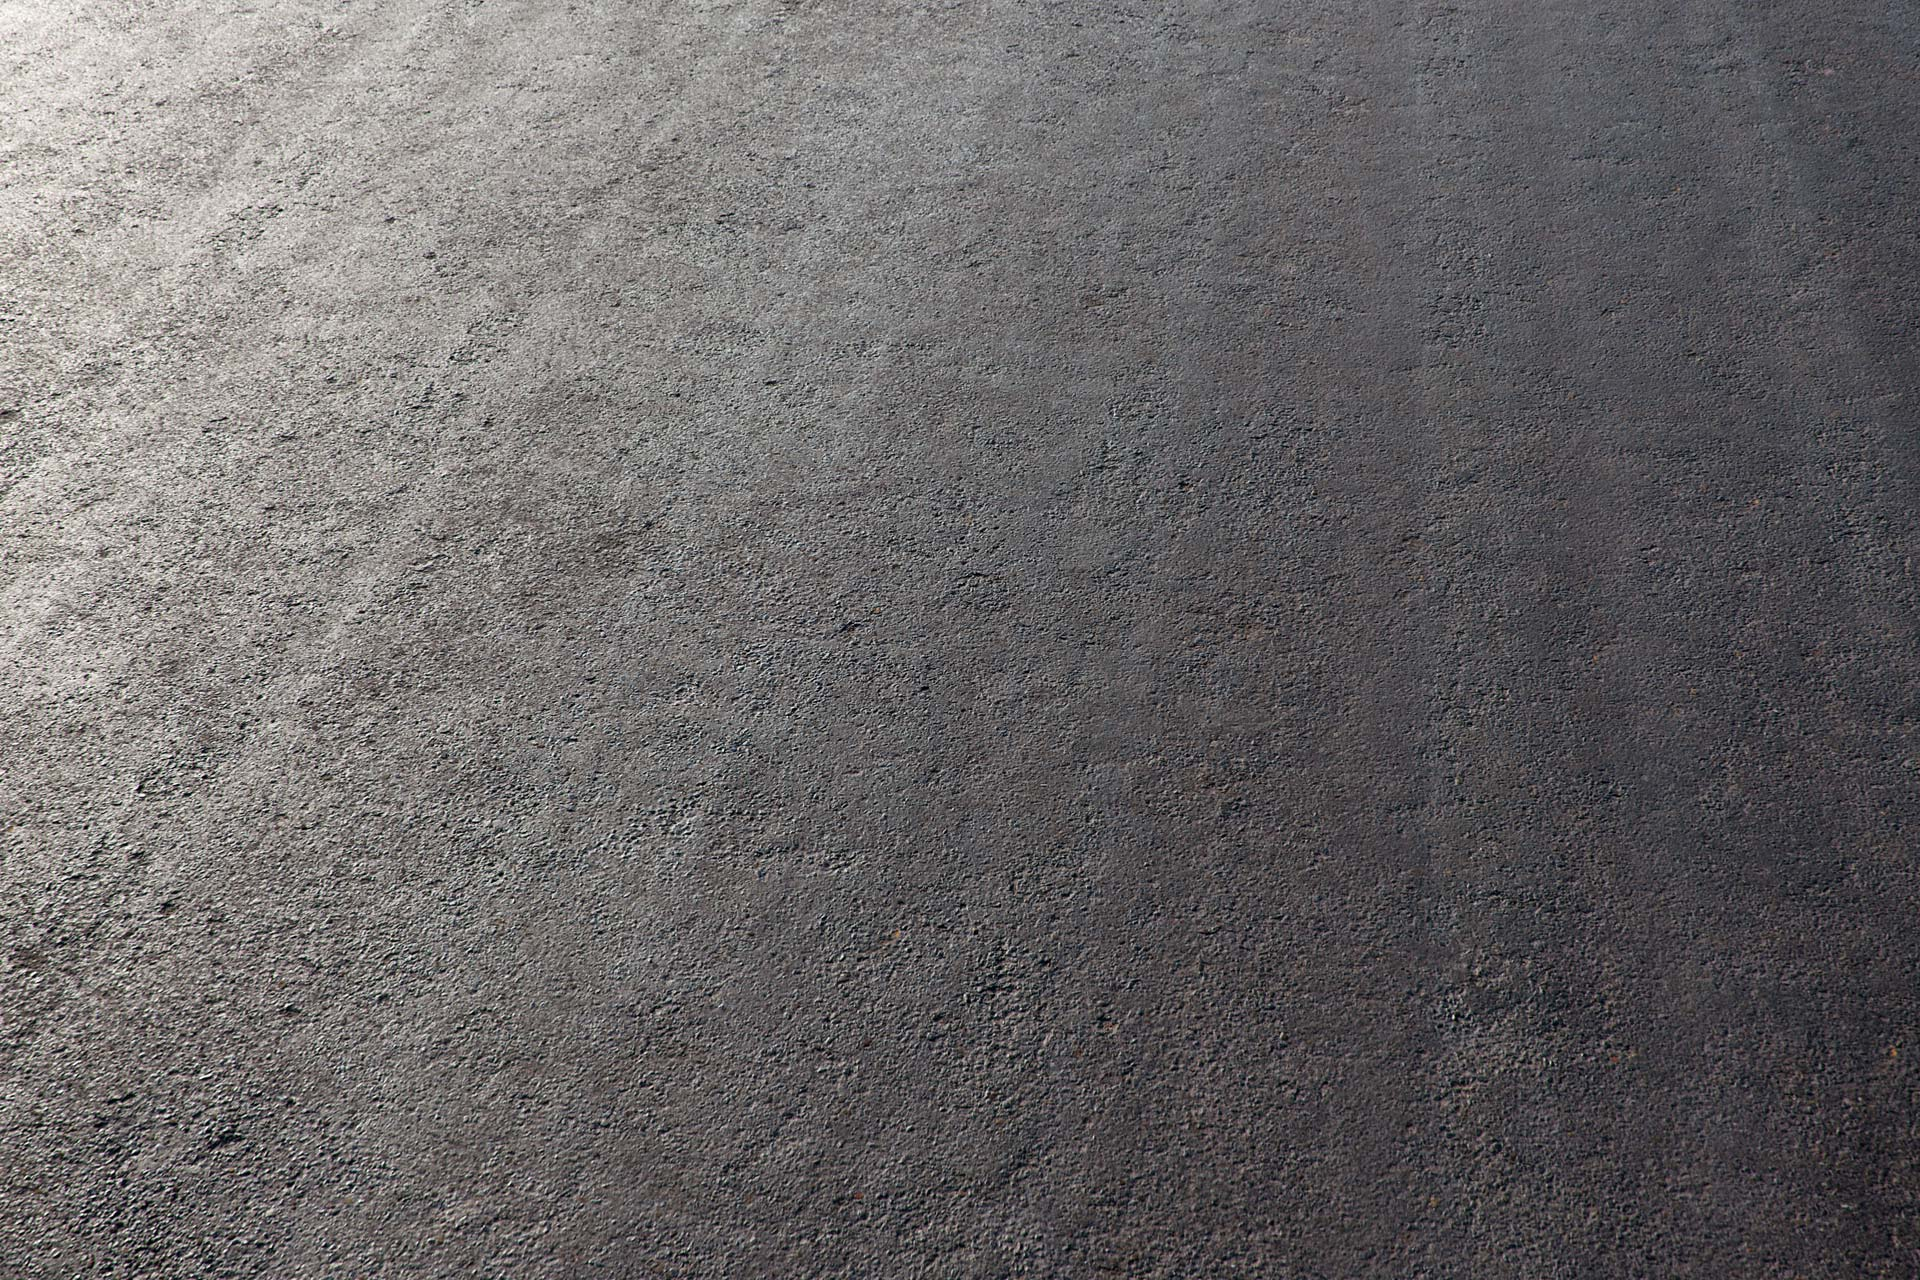 The image shows a road made using our fourth road asphalt texture